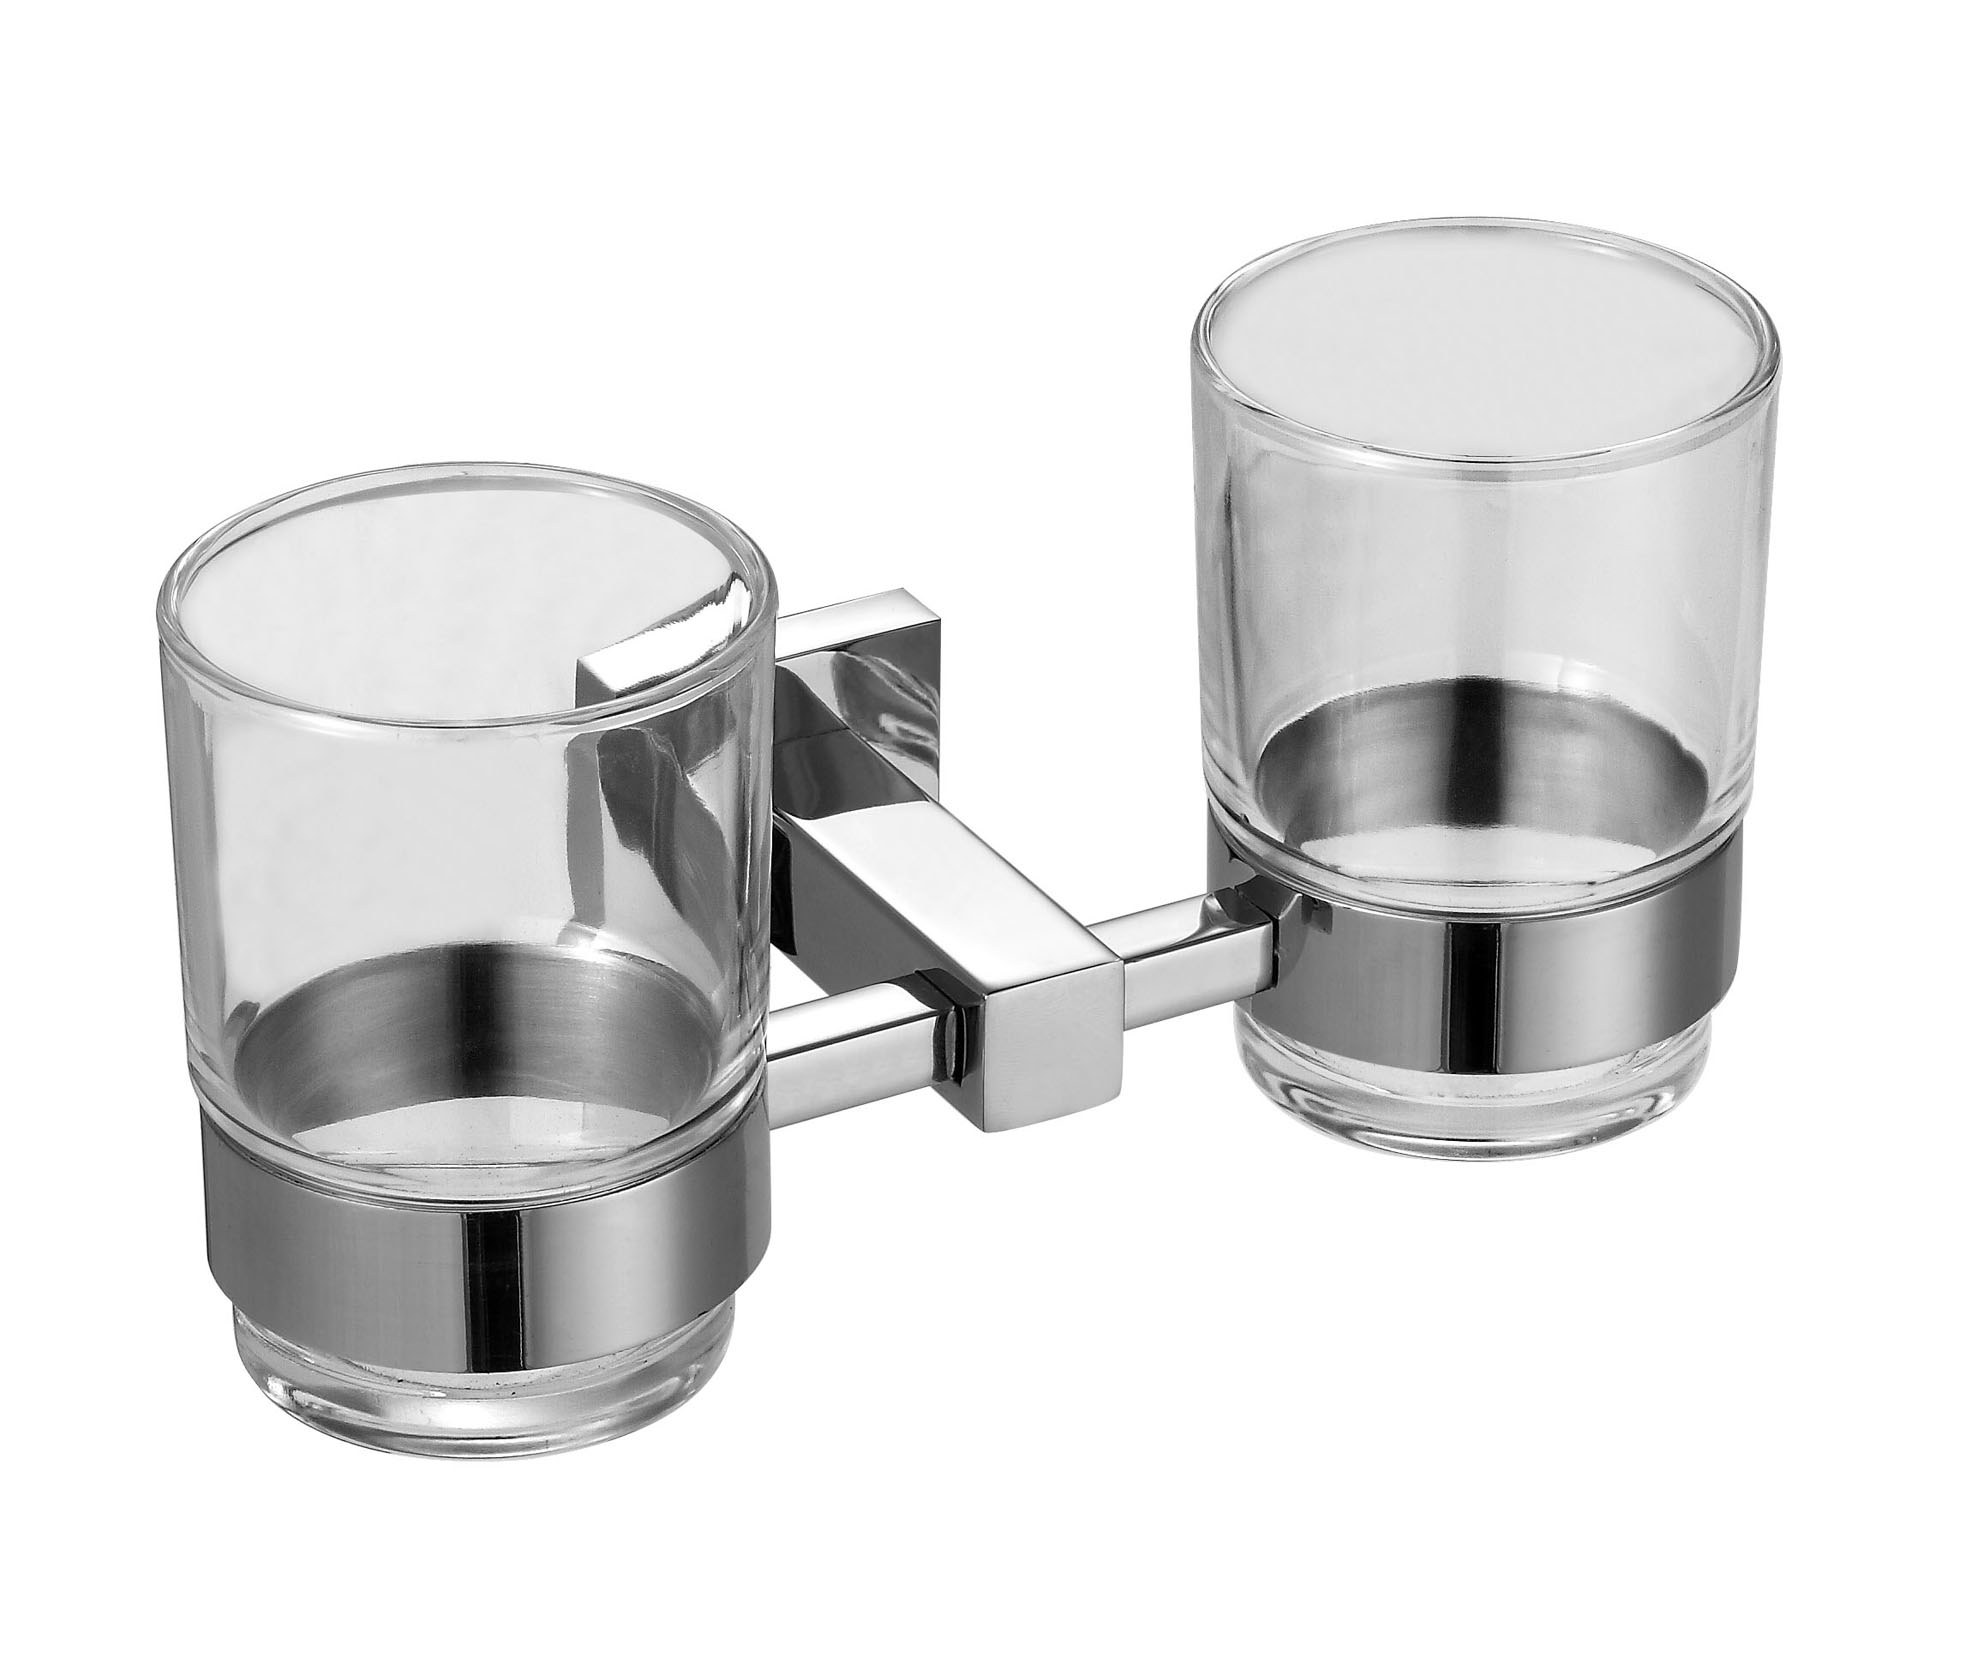 New products christmas bathroom accessories double tumbler holder,Cup Holder